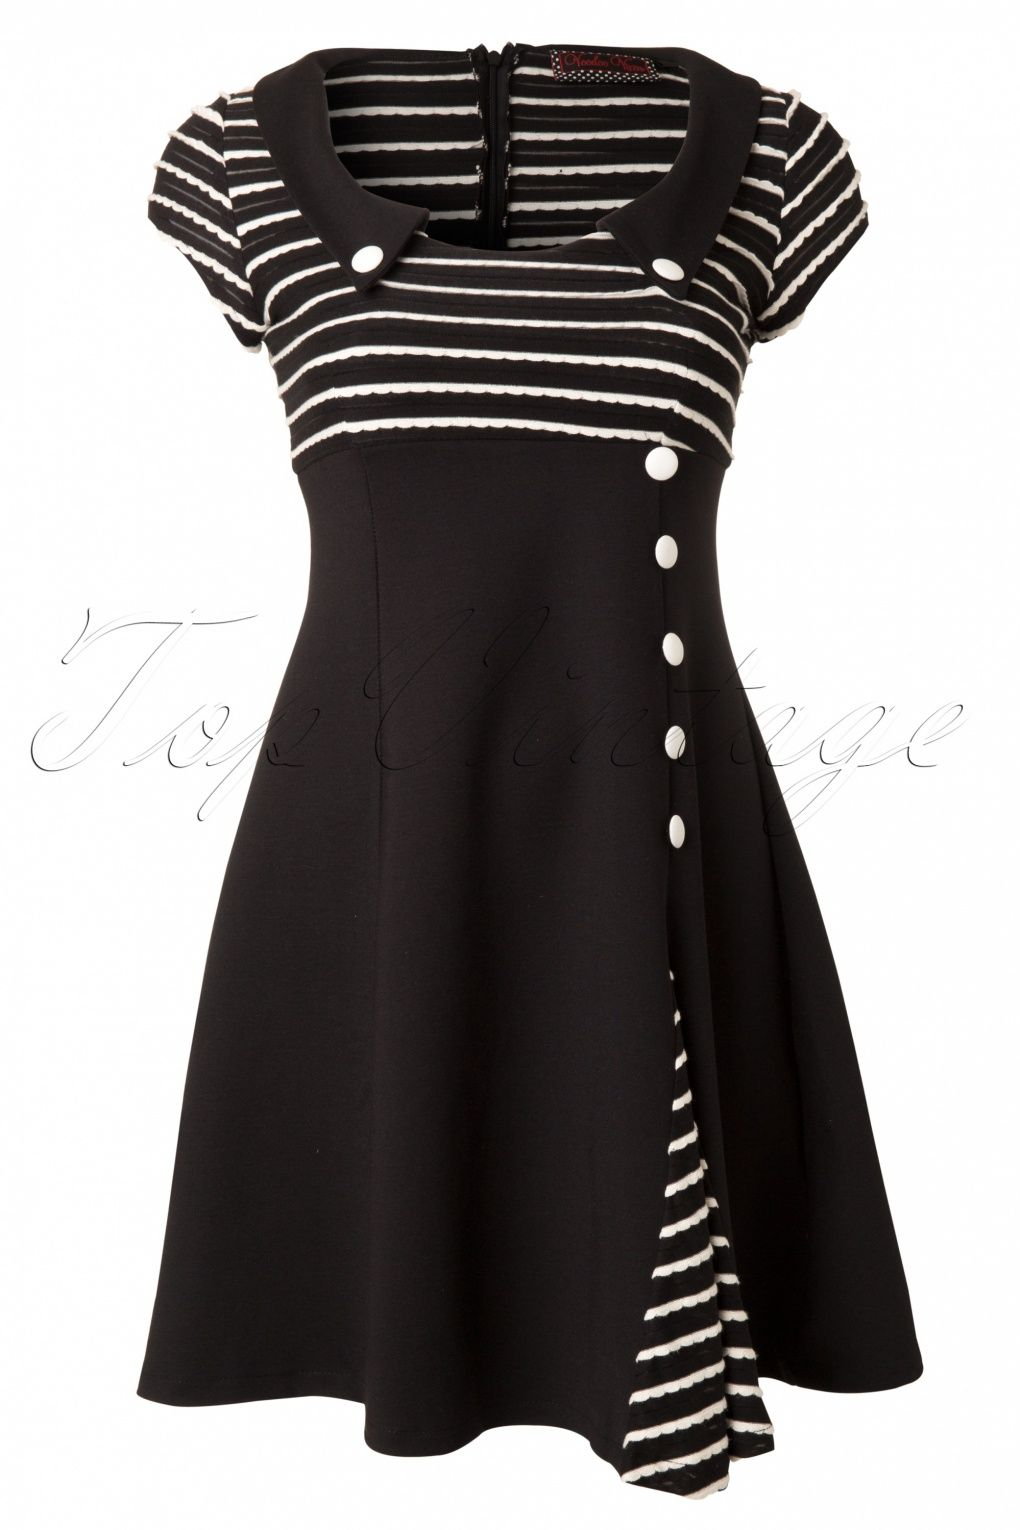 Vixen s oh so striped a line dress in black and white this is